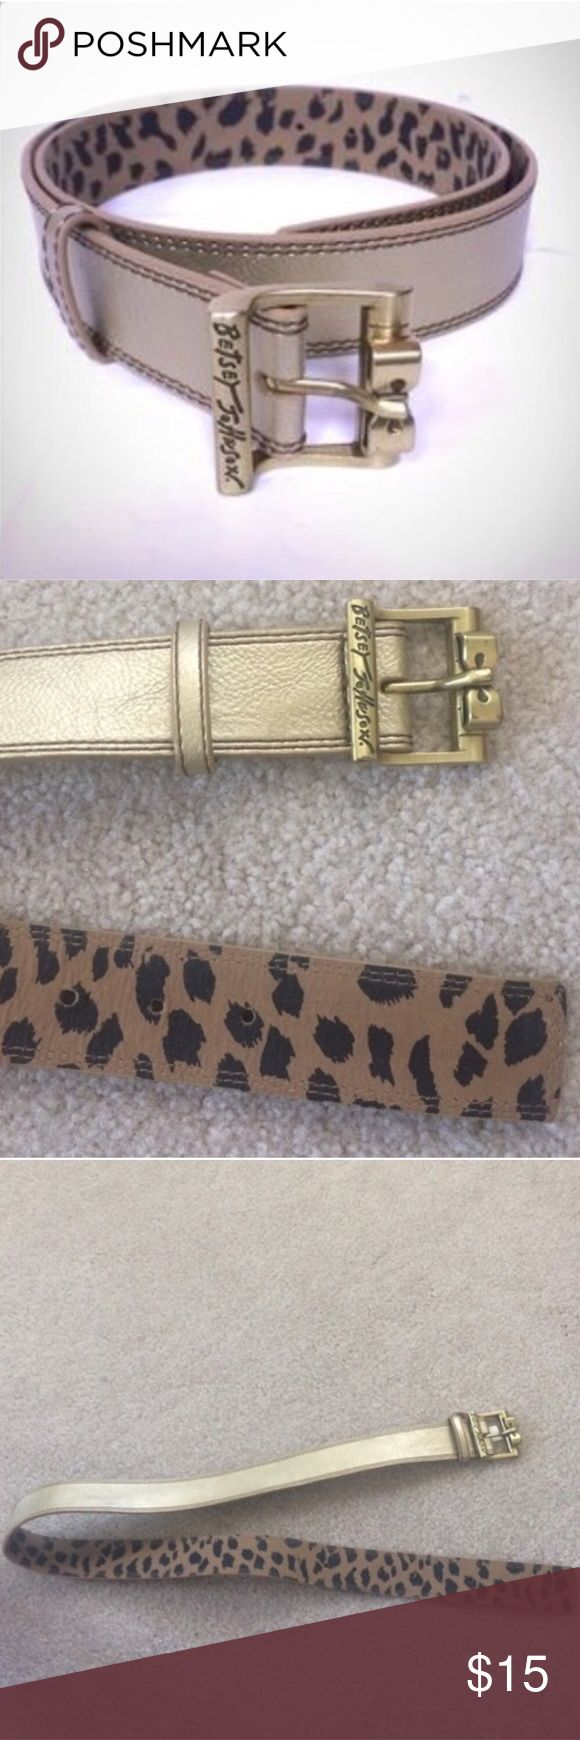 🎉HP Betsey Johnson Gold Metallic Bow Belt Leopard 🎉HOST PICK🎉 Betsey Johnson gold metallic belt, gold bow buckle, Size Small, leopard print on inside, about 38 inches long, adjustable holes, in very good condition. Please ask any questions  💲Price is firm unless bundled💲 🚫No Trades🚫 📦Ask About Bundle Discounts💰 Betsey Johnson Accessories Belts